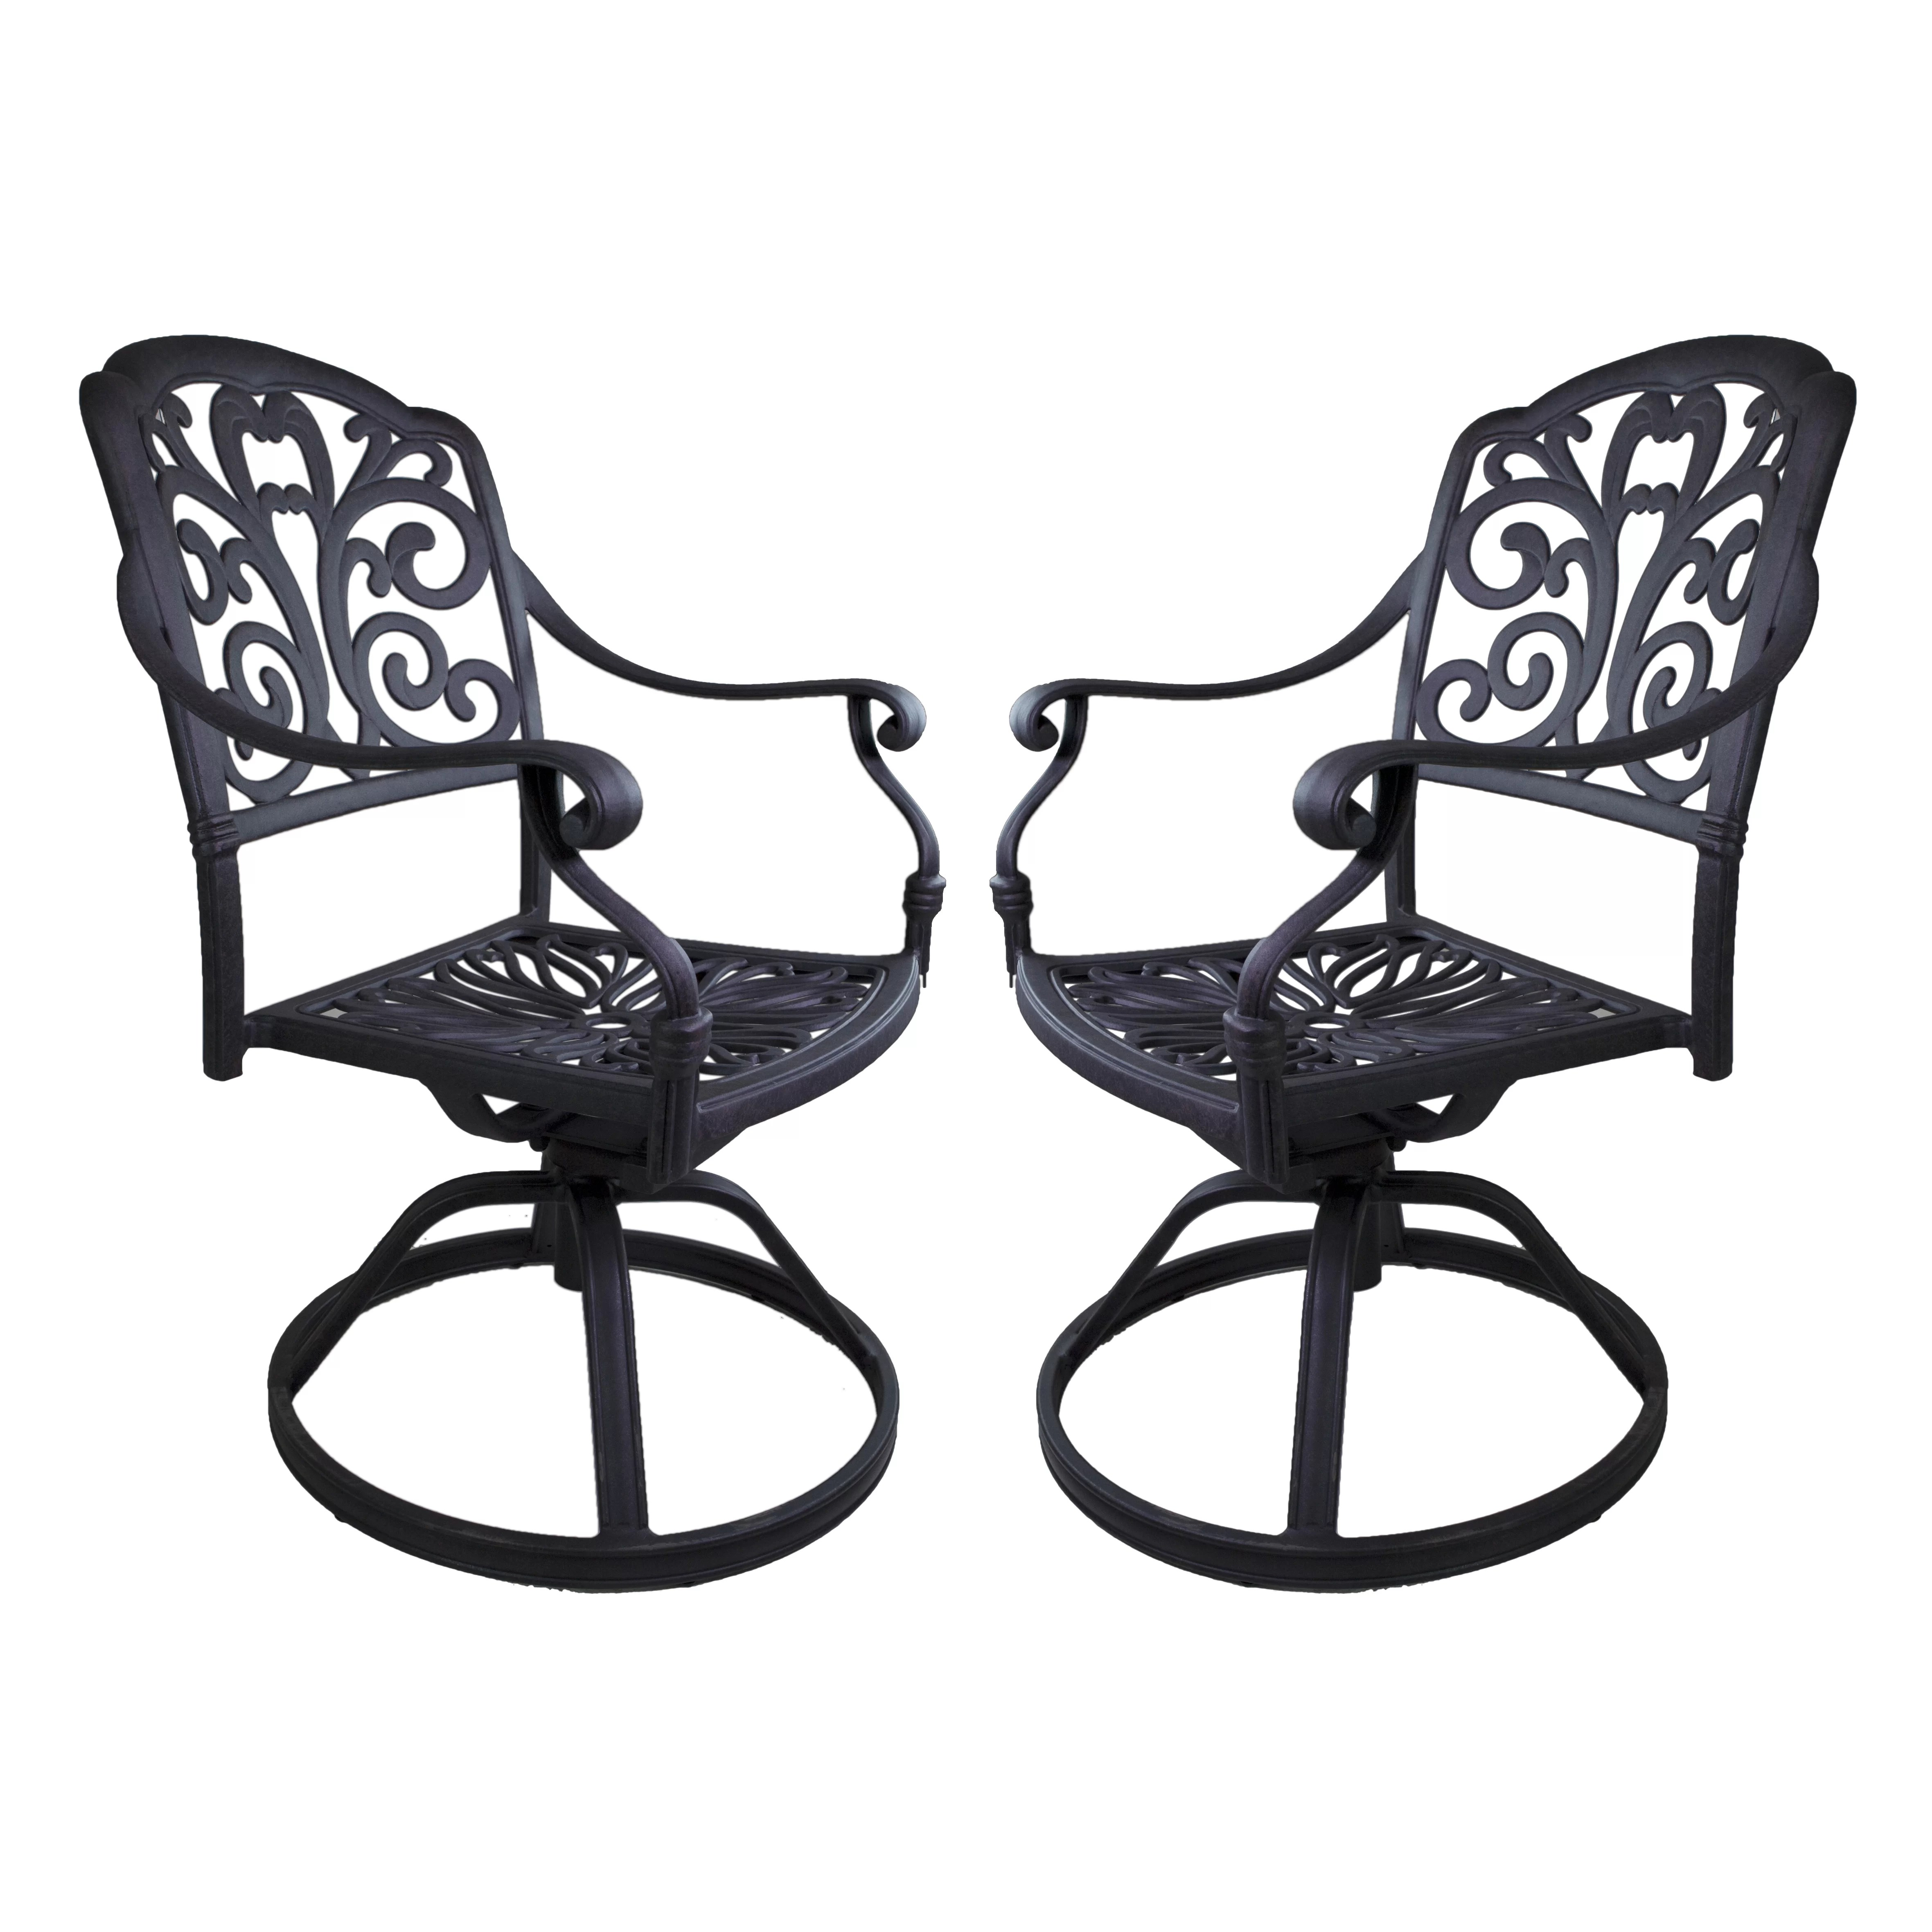 Rocking Swivel Chair California Outdoor Designs Roma Swivel Rocking Chair Set